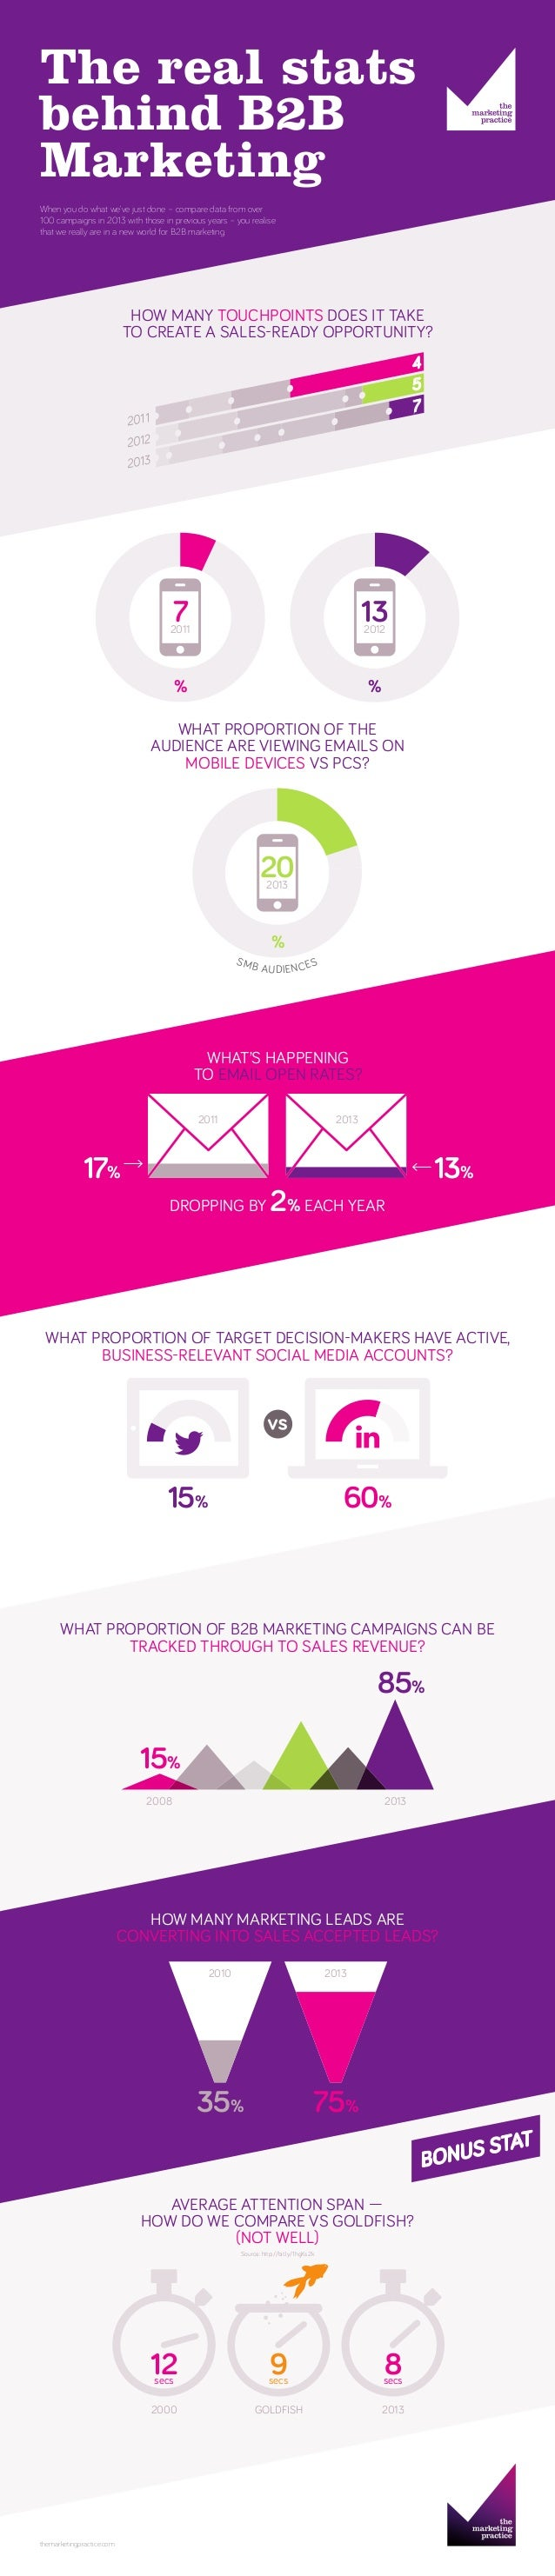 The real stats behind B2B Marketing HOW MANY TOUCHPOINTS DOES IT TAKE TO CREATE A SALES-READY OPPORTUNITY? WHAT'S HAPPENIN...